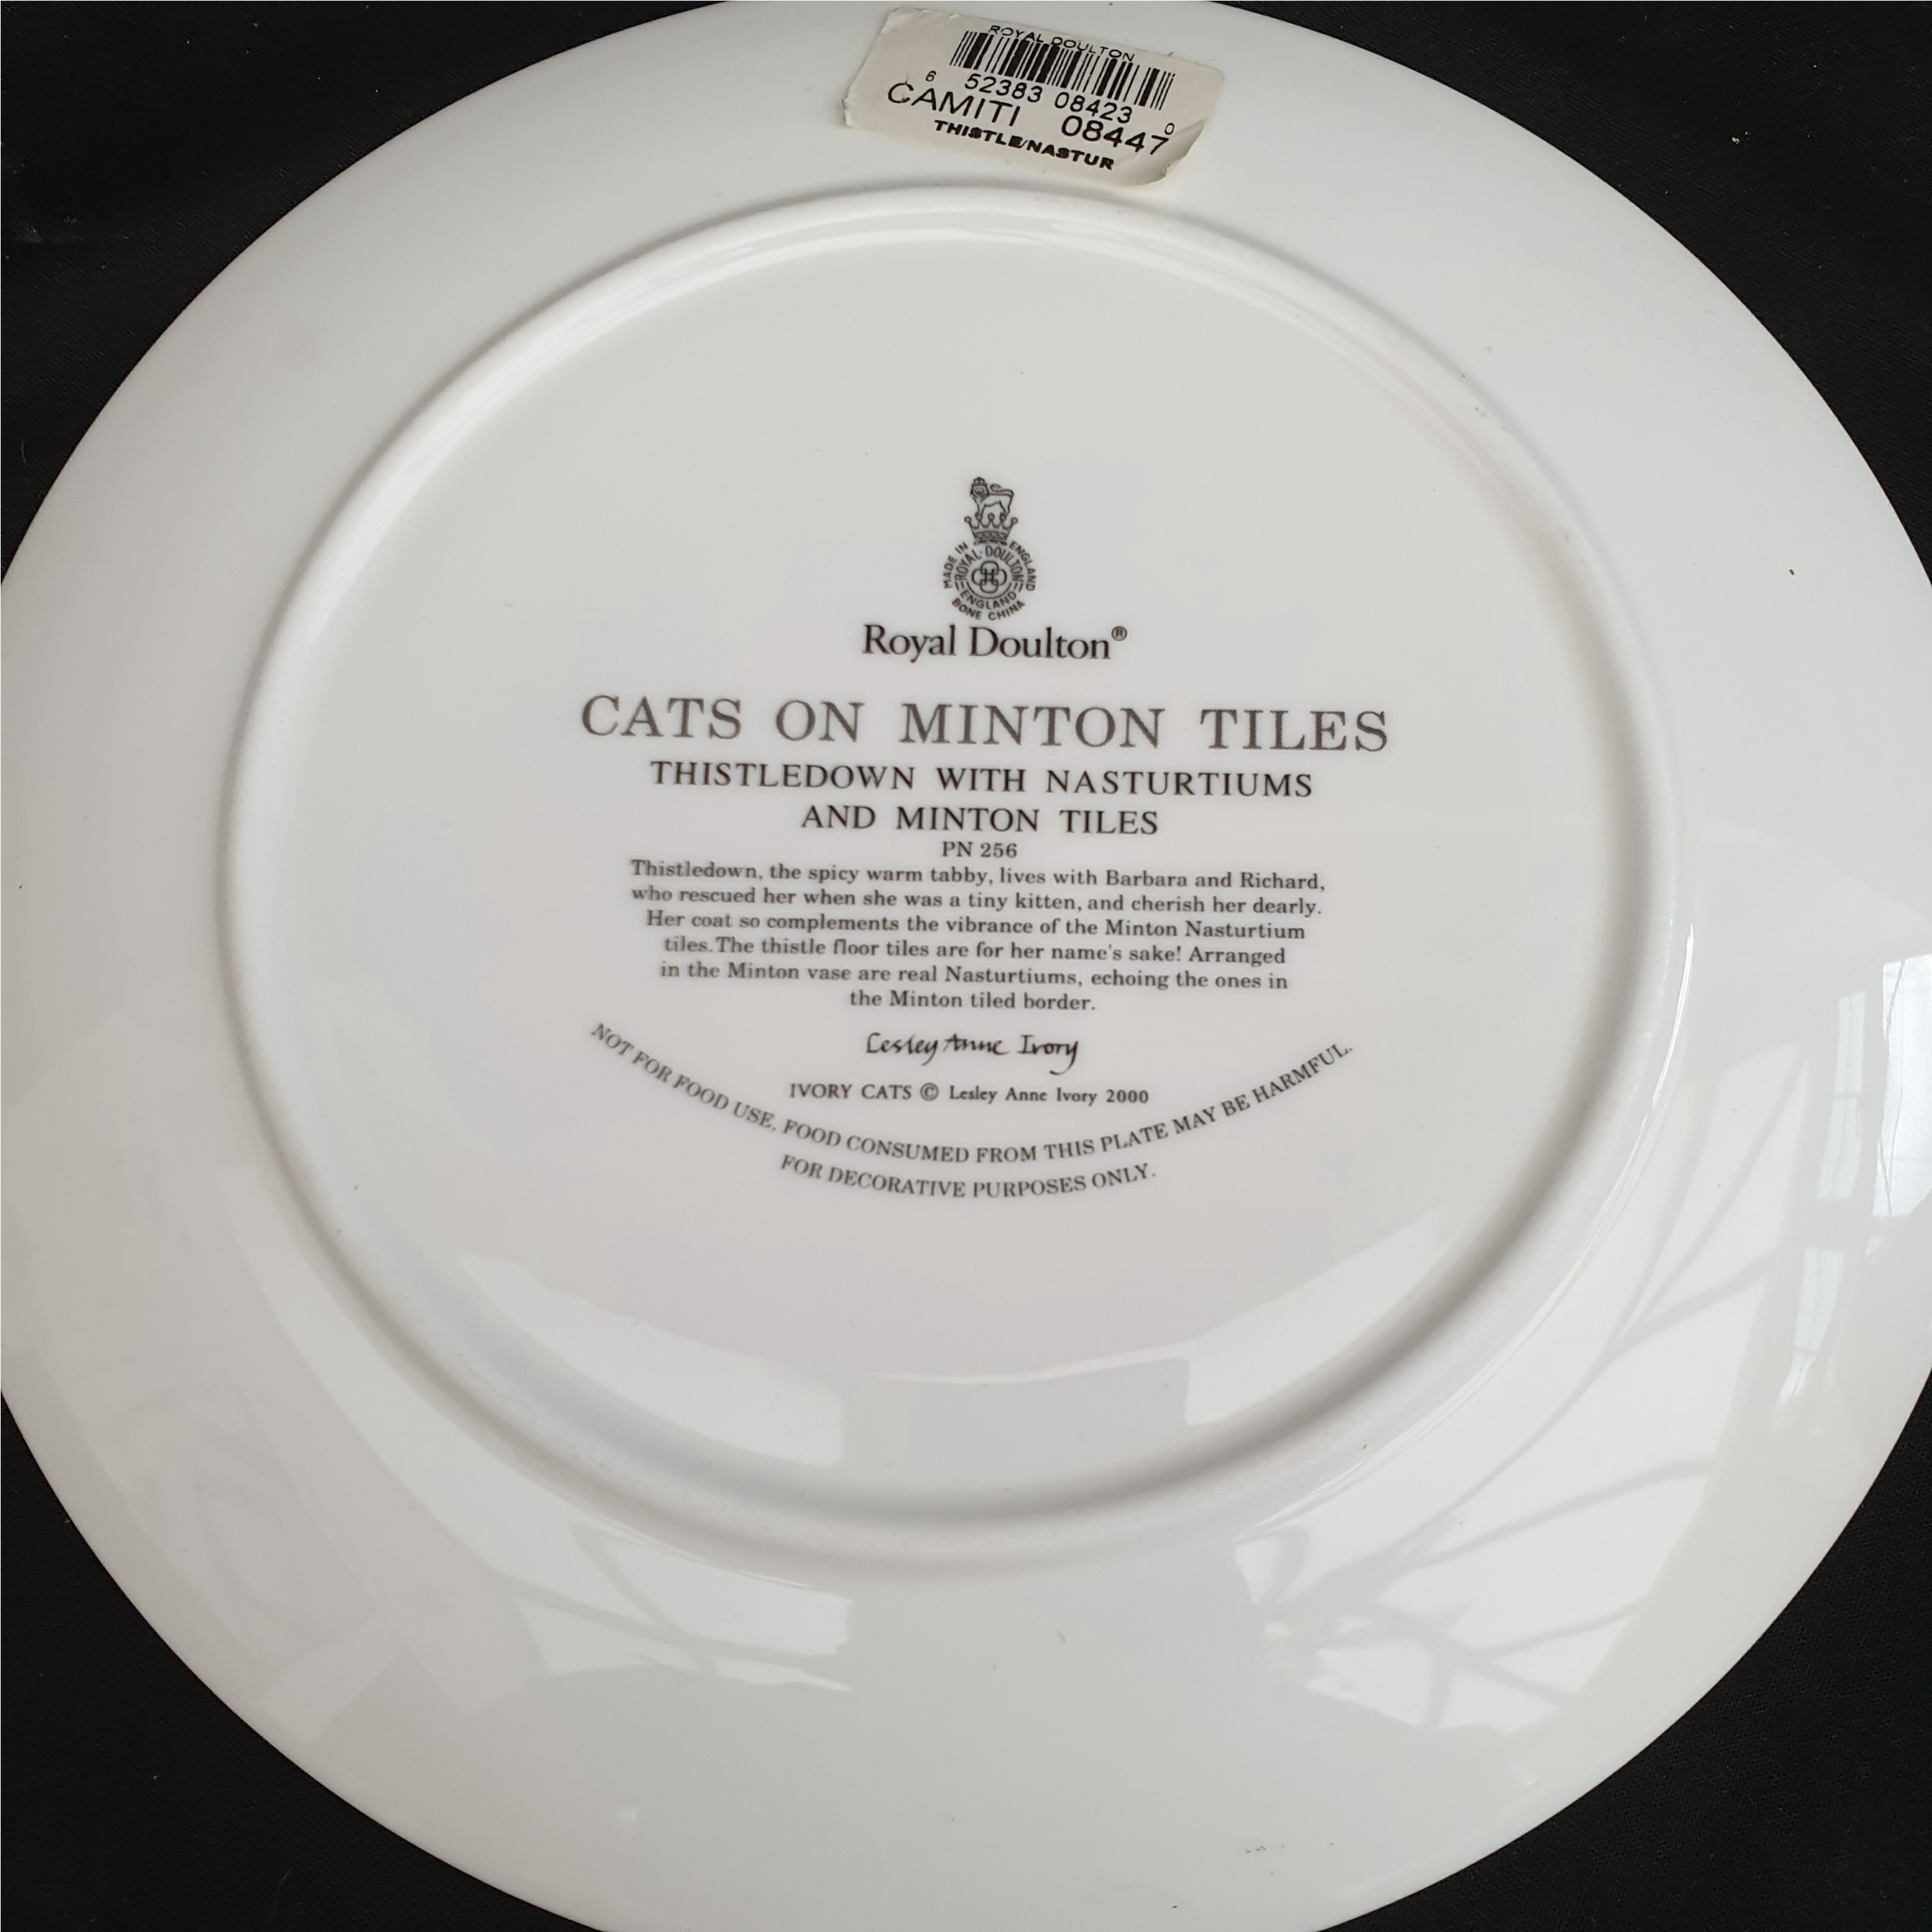 Vintage Parcel of Boxed Collectables Includes Royal Doulton 8 Inch Cat Plate - Image 2 of 2